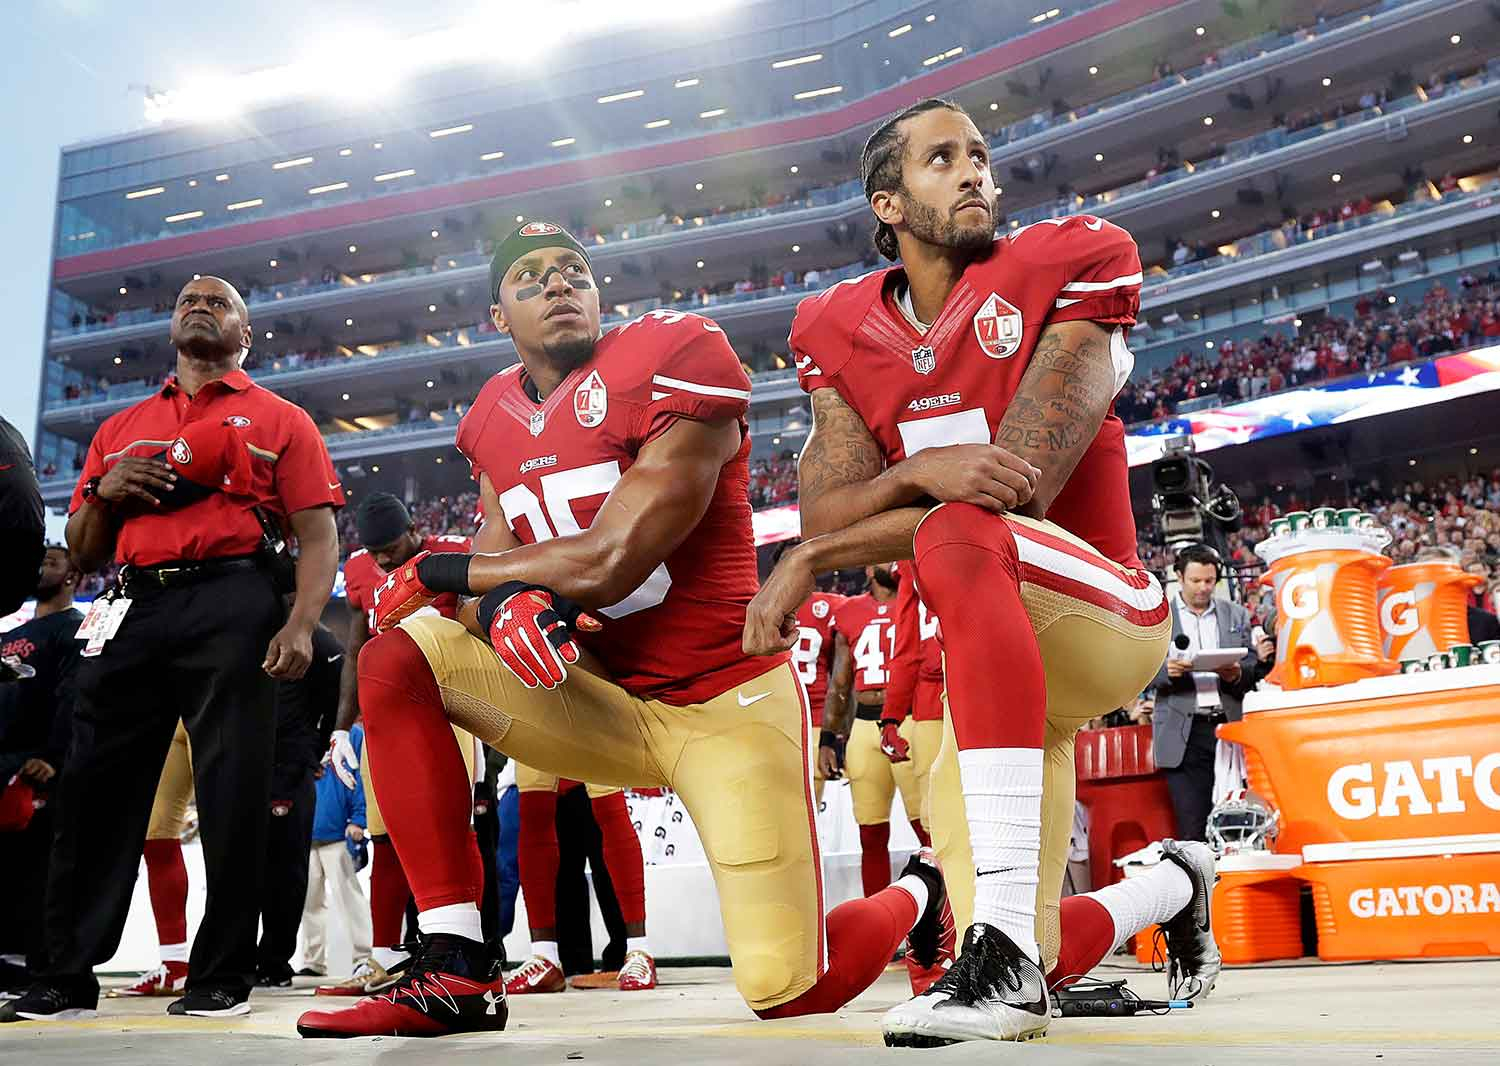 958d1d75f64 Colin Kaepernick s Protest  One Month Later – Rolling Stone